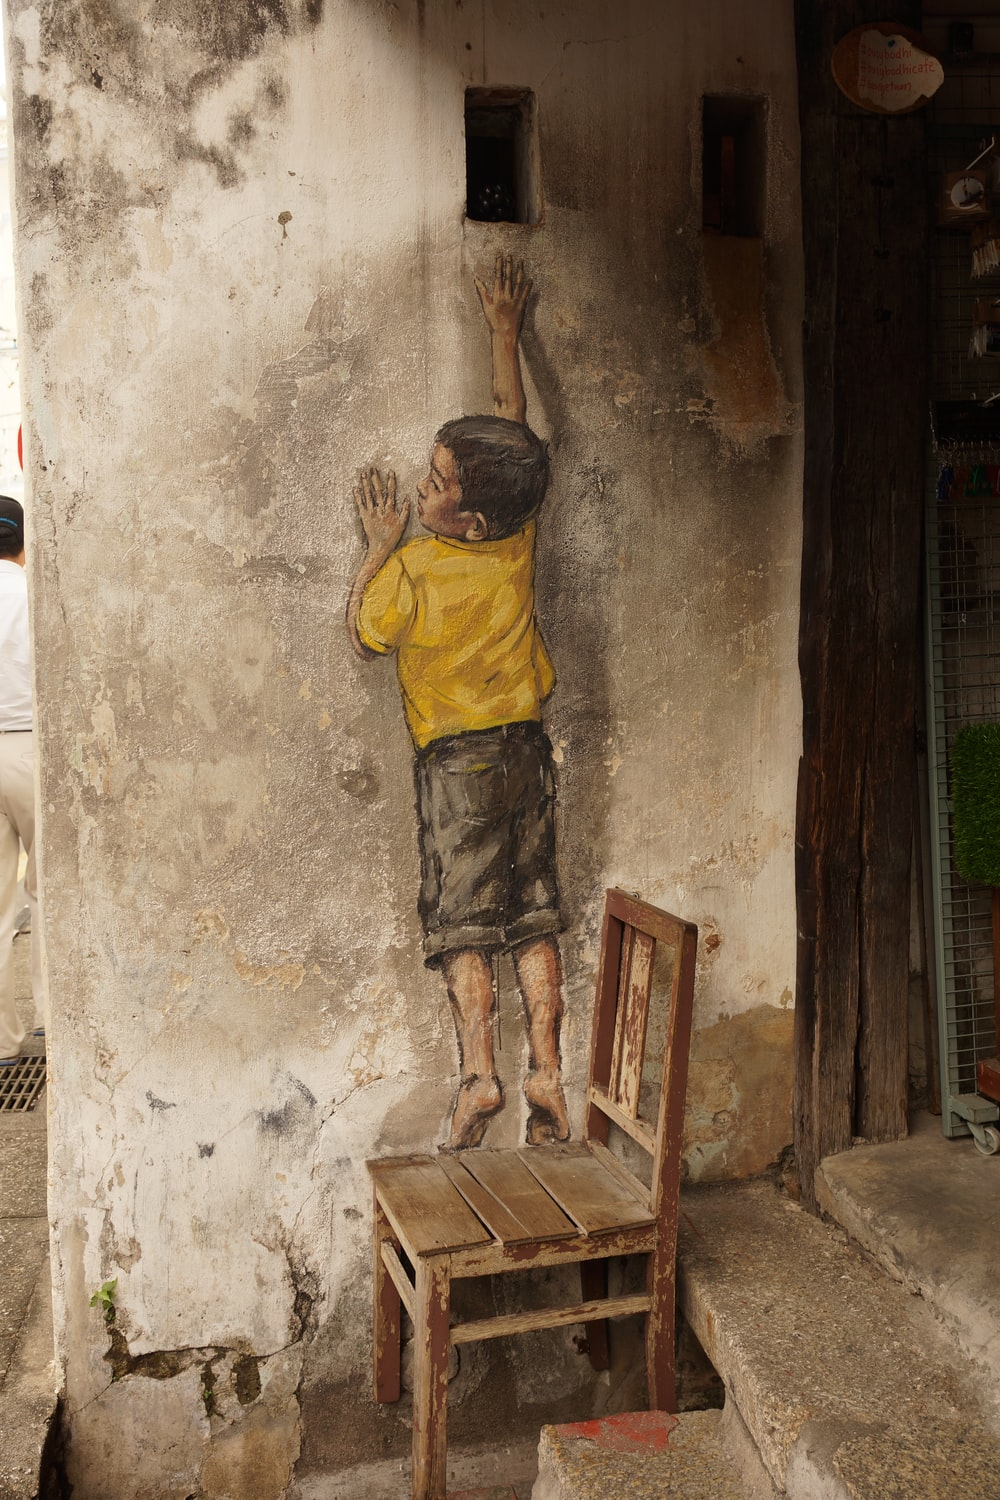 boy standing on wooden chair reaching hole on concrete wall painting